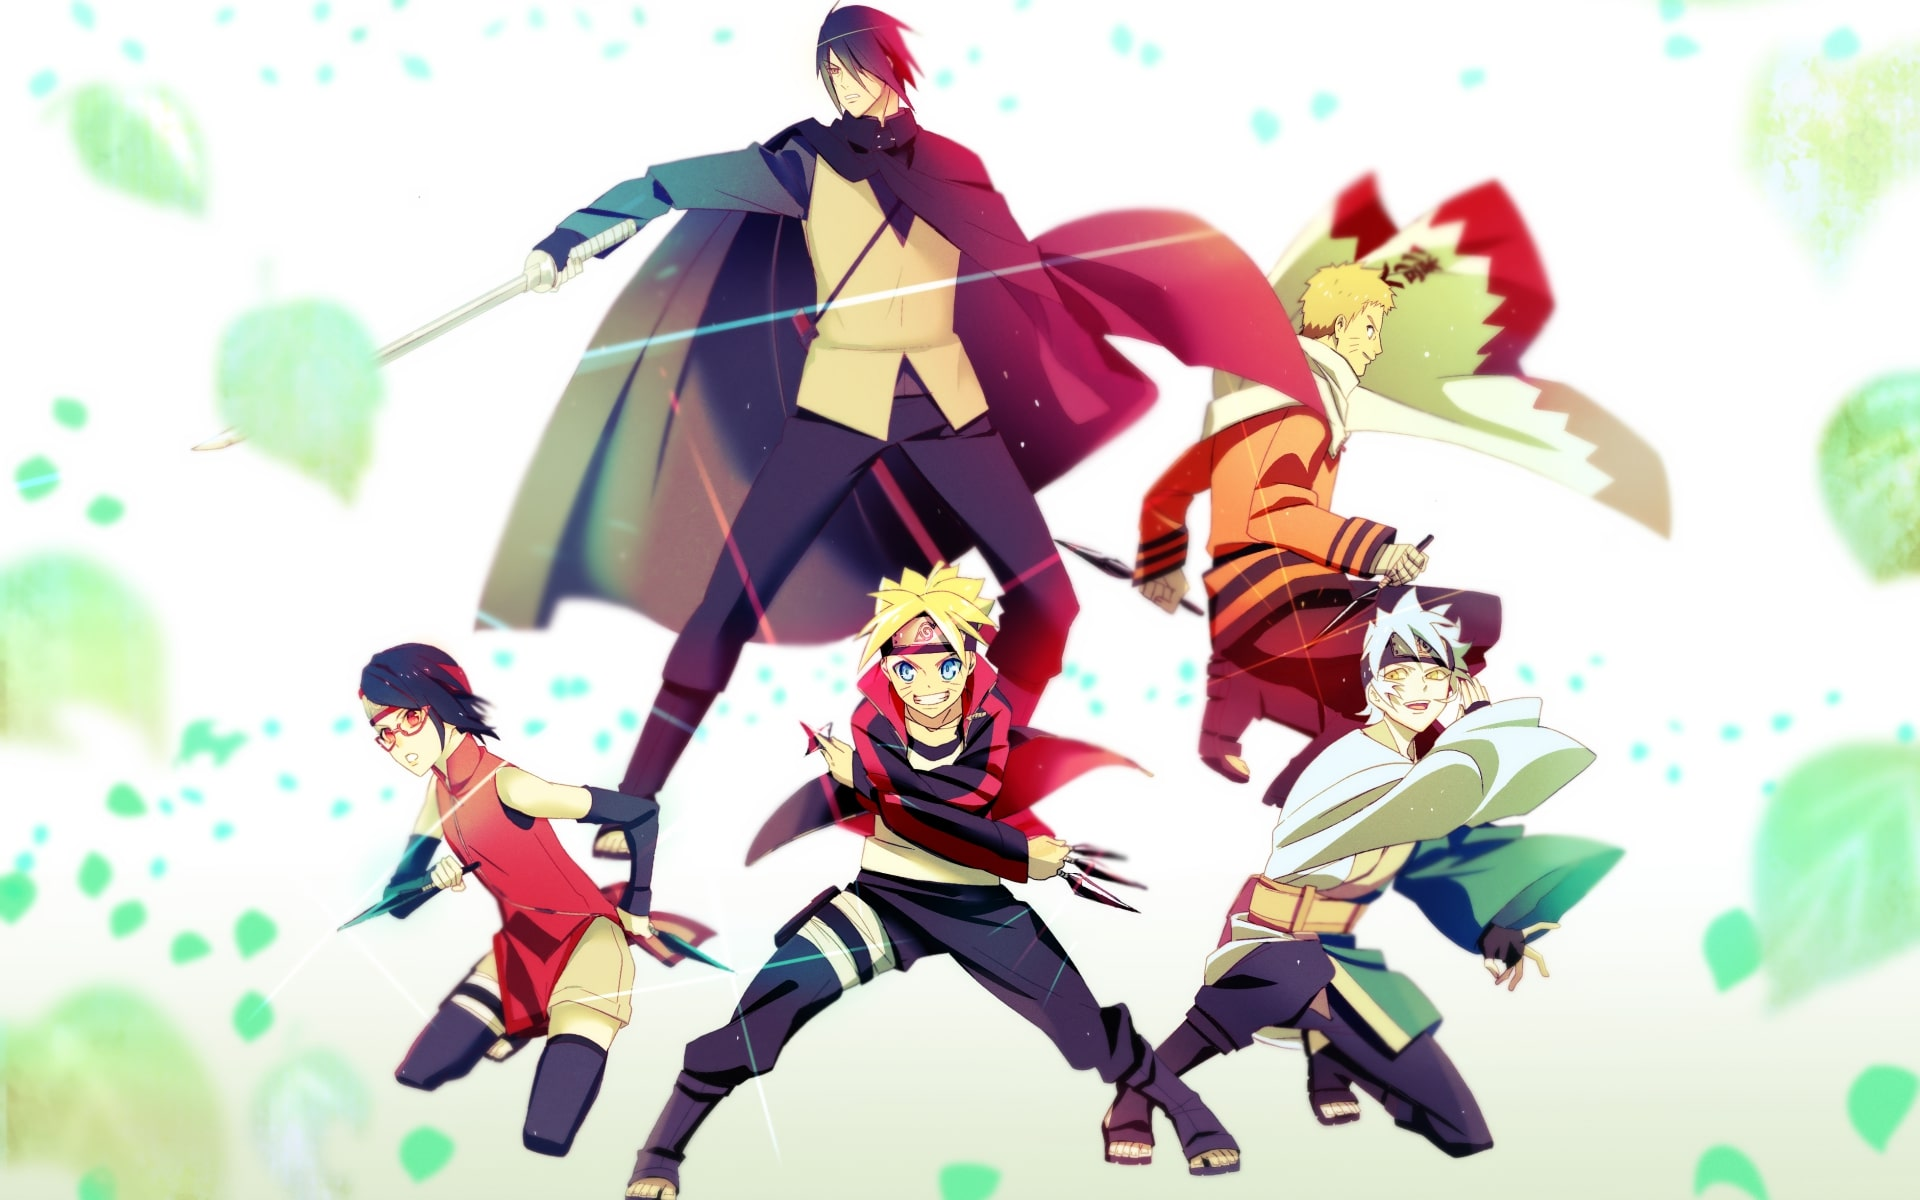 Wallpaper Of Boruto, Mitsuki, Sarada, Sasuke, Naruto - Fondos De Pantalla De Sasuke En Boruto , HD Wallpaper & Backgrounds